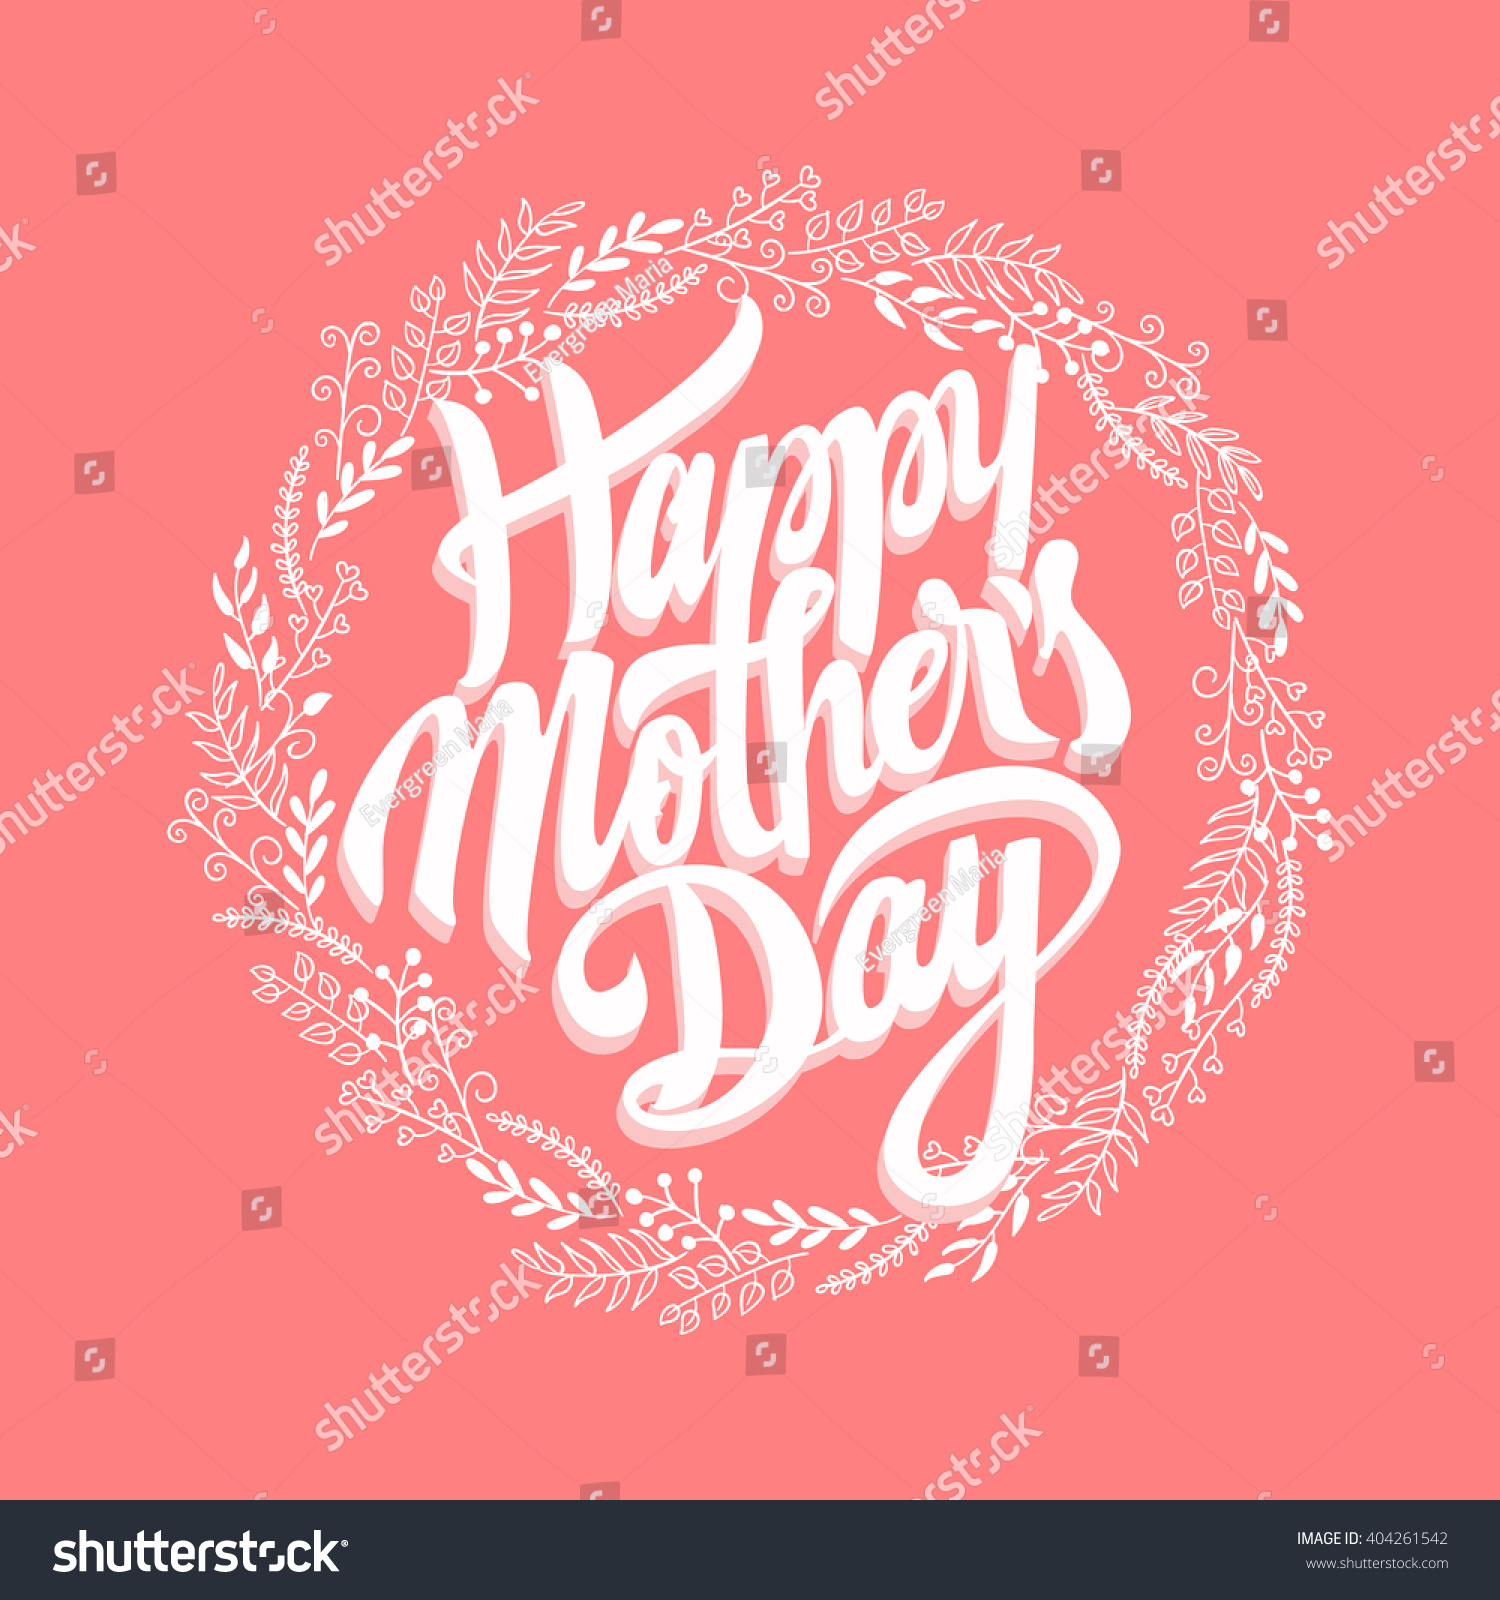 I Love You Mom Happy Mothers Day Flyer Template Psd Free: Happy Mothers Day Design Elements Vector Stock Vector